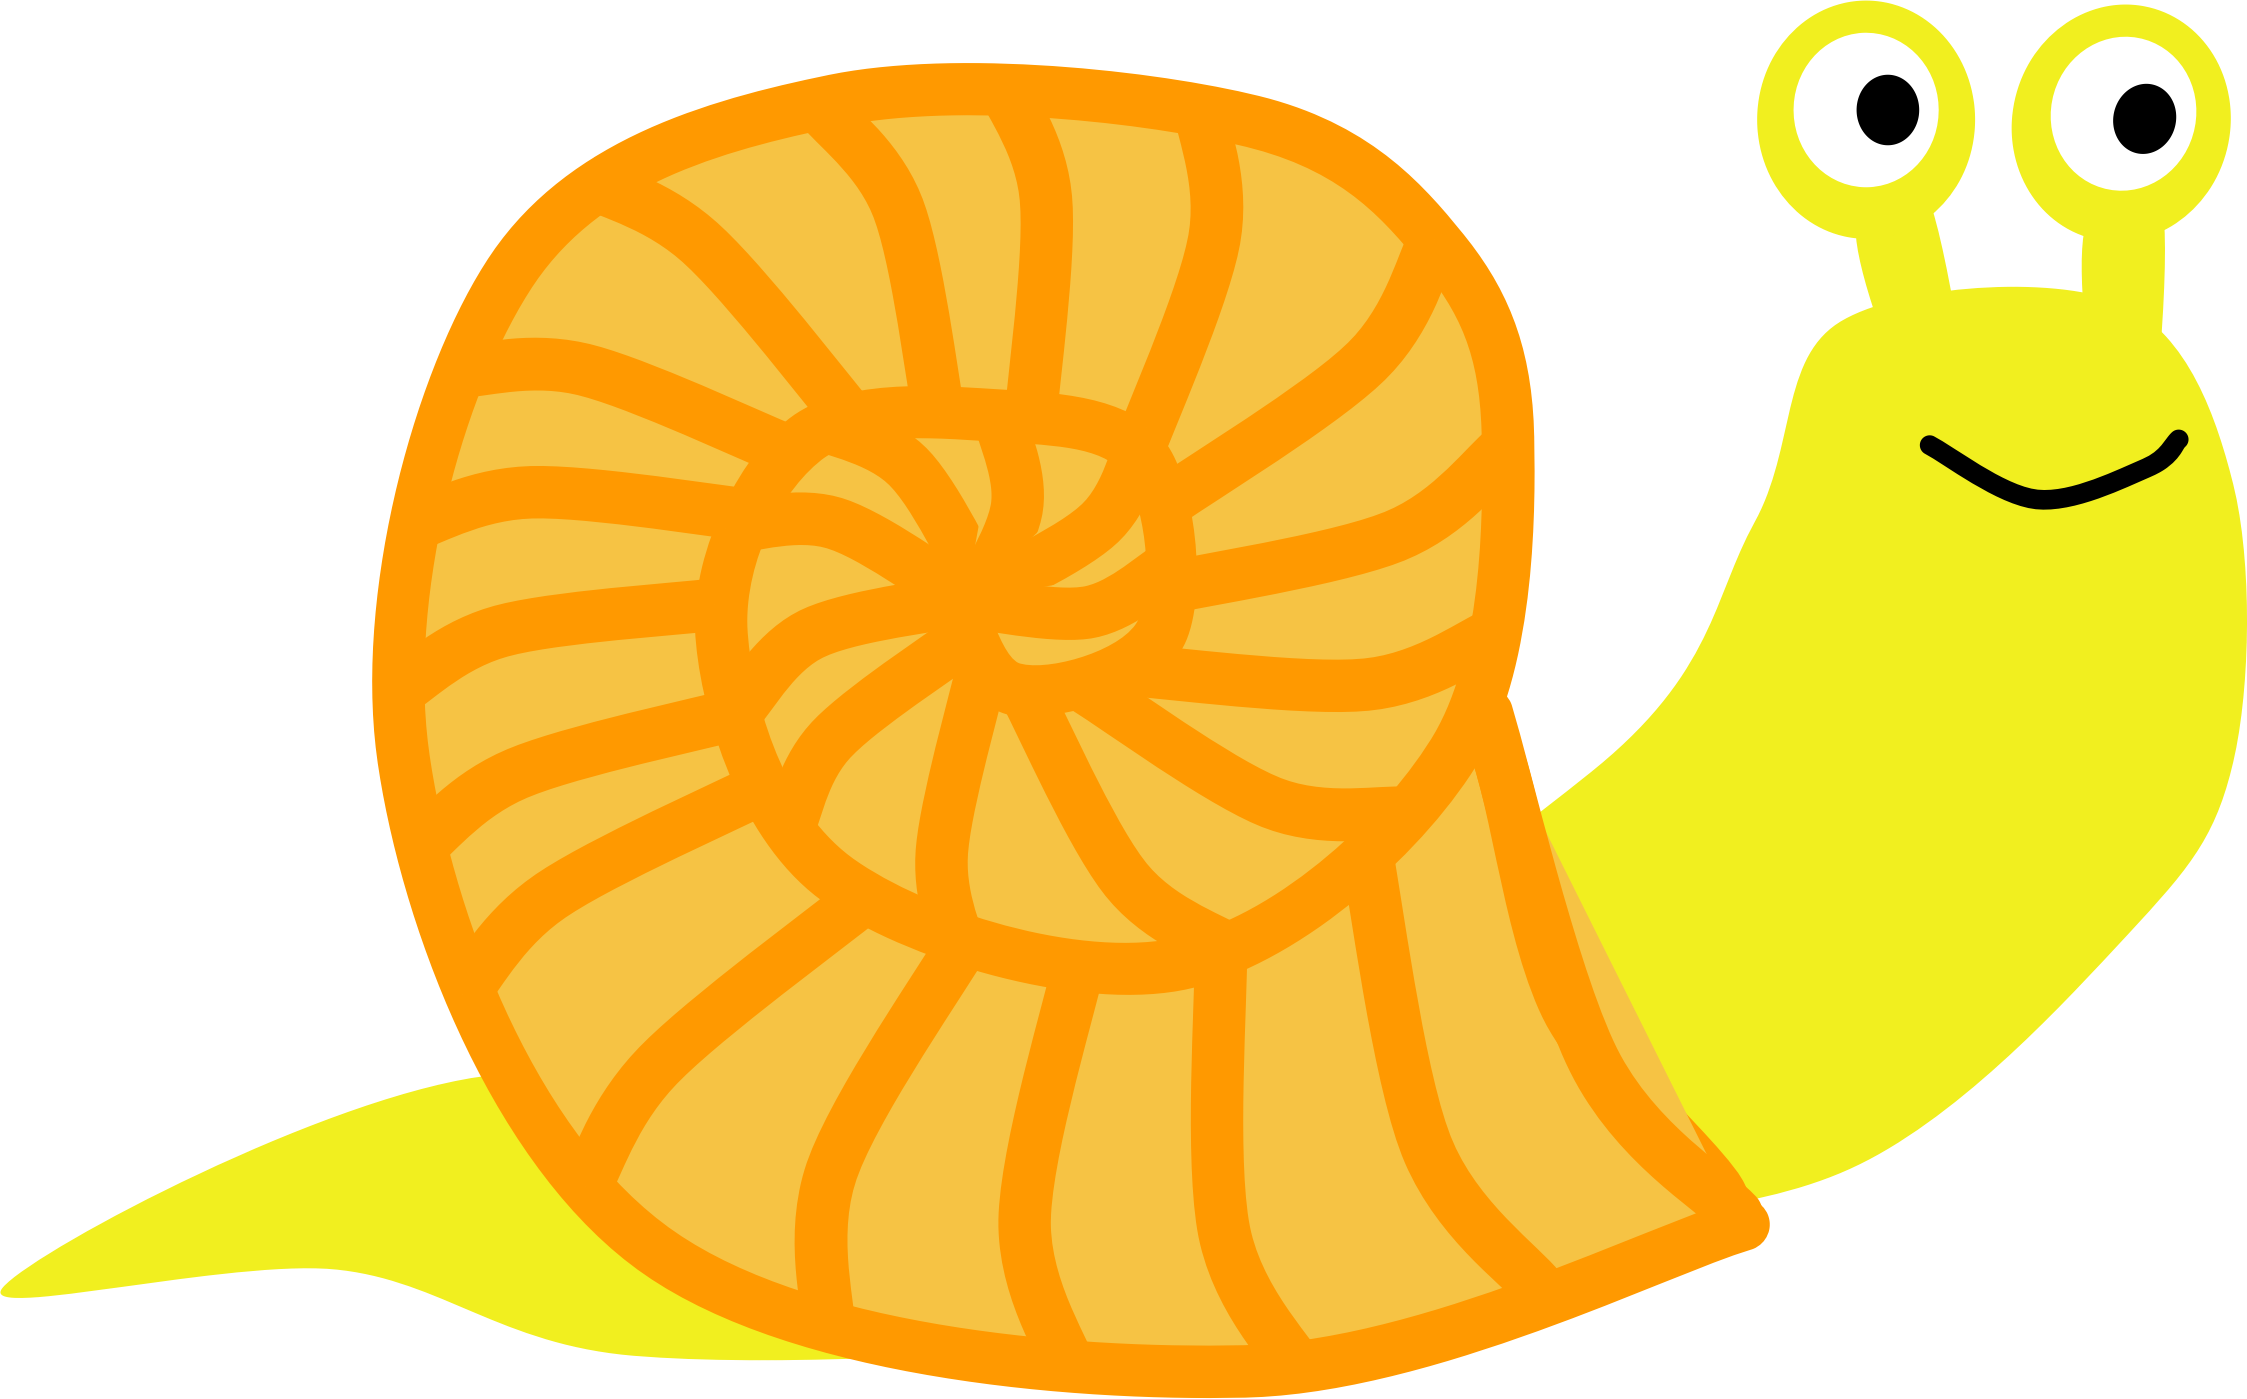 Snail Orange by Scout